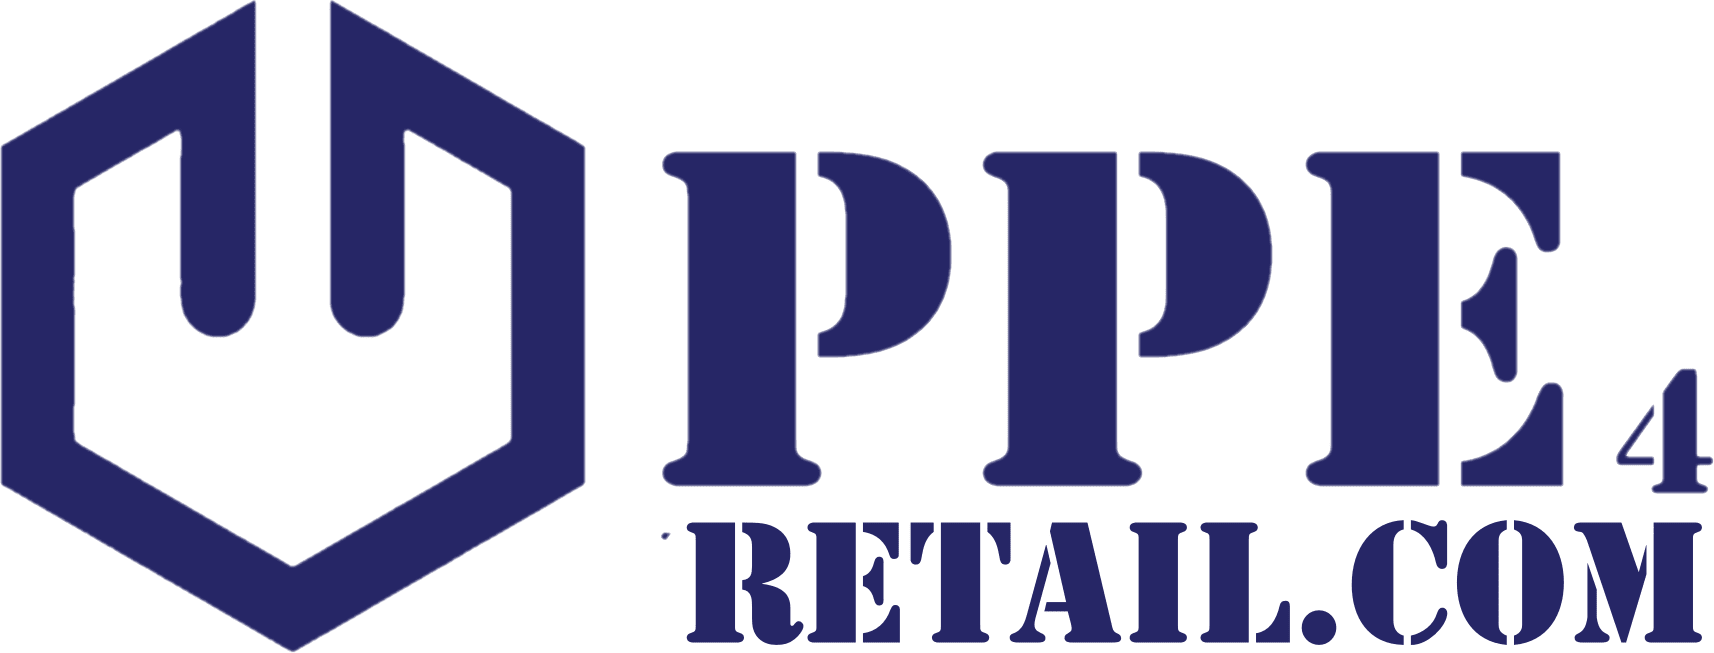 PPE Retail